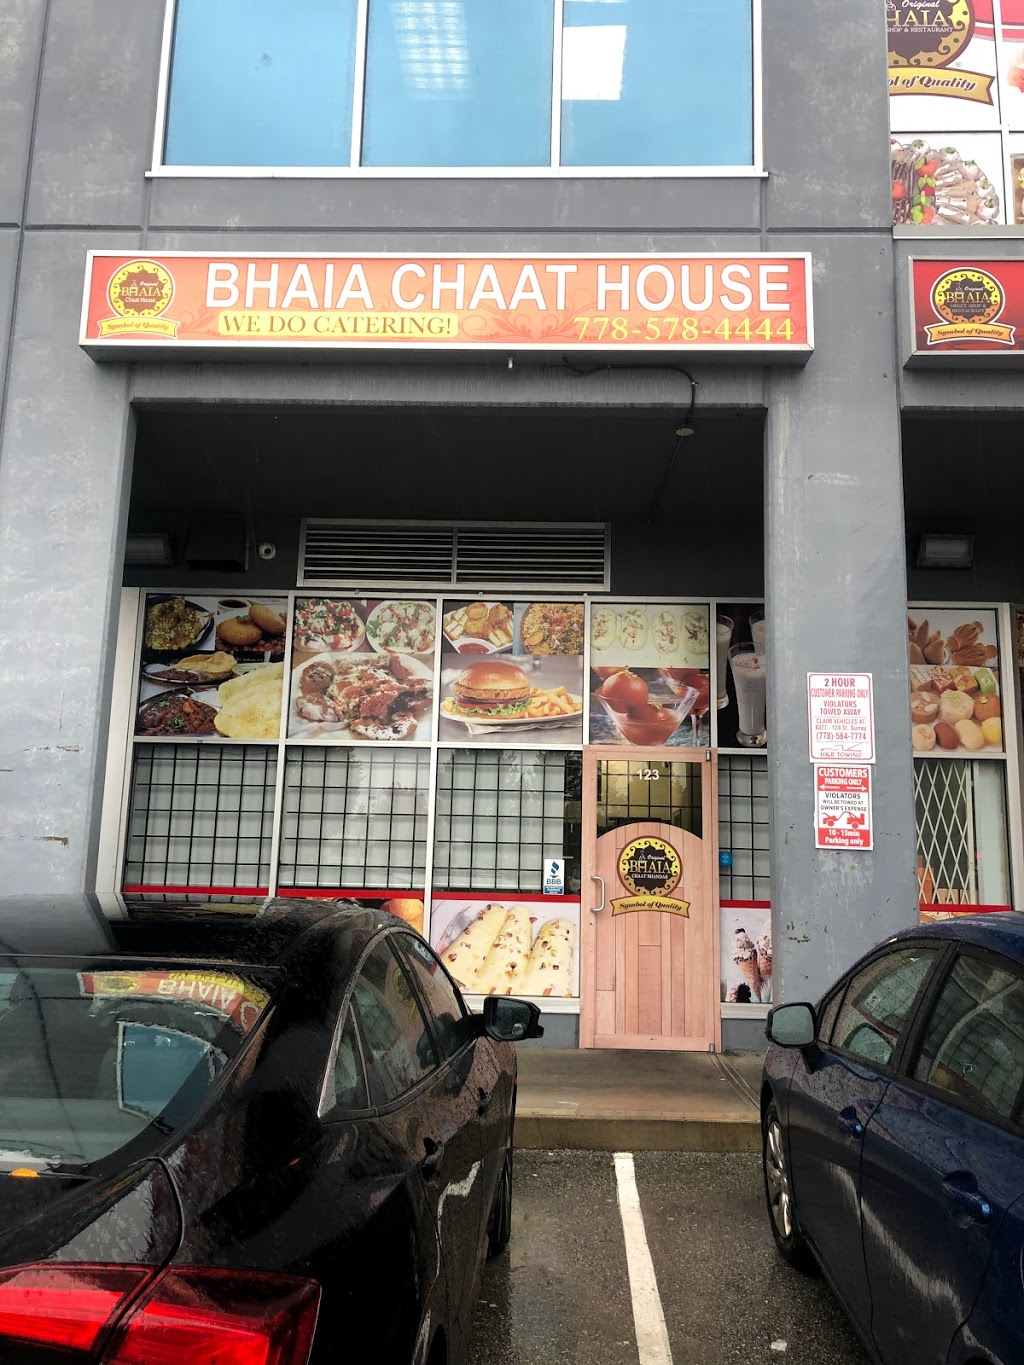 Bhaia Chat House | restaurant | 15299 68 Ave, Surrey, BC V3S 3L5, Canada | 7785784444 OR +1 778-578-4444